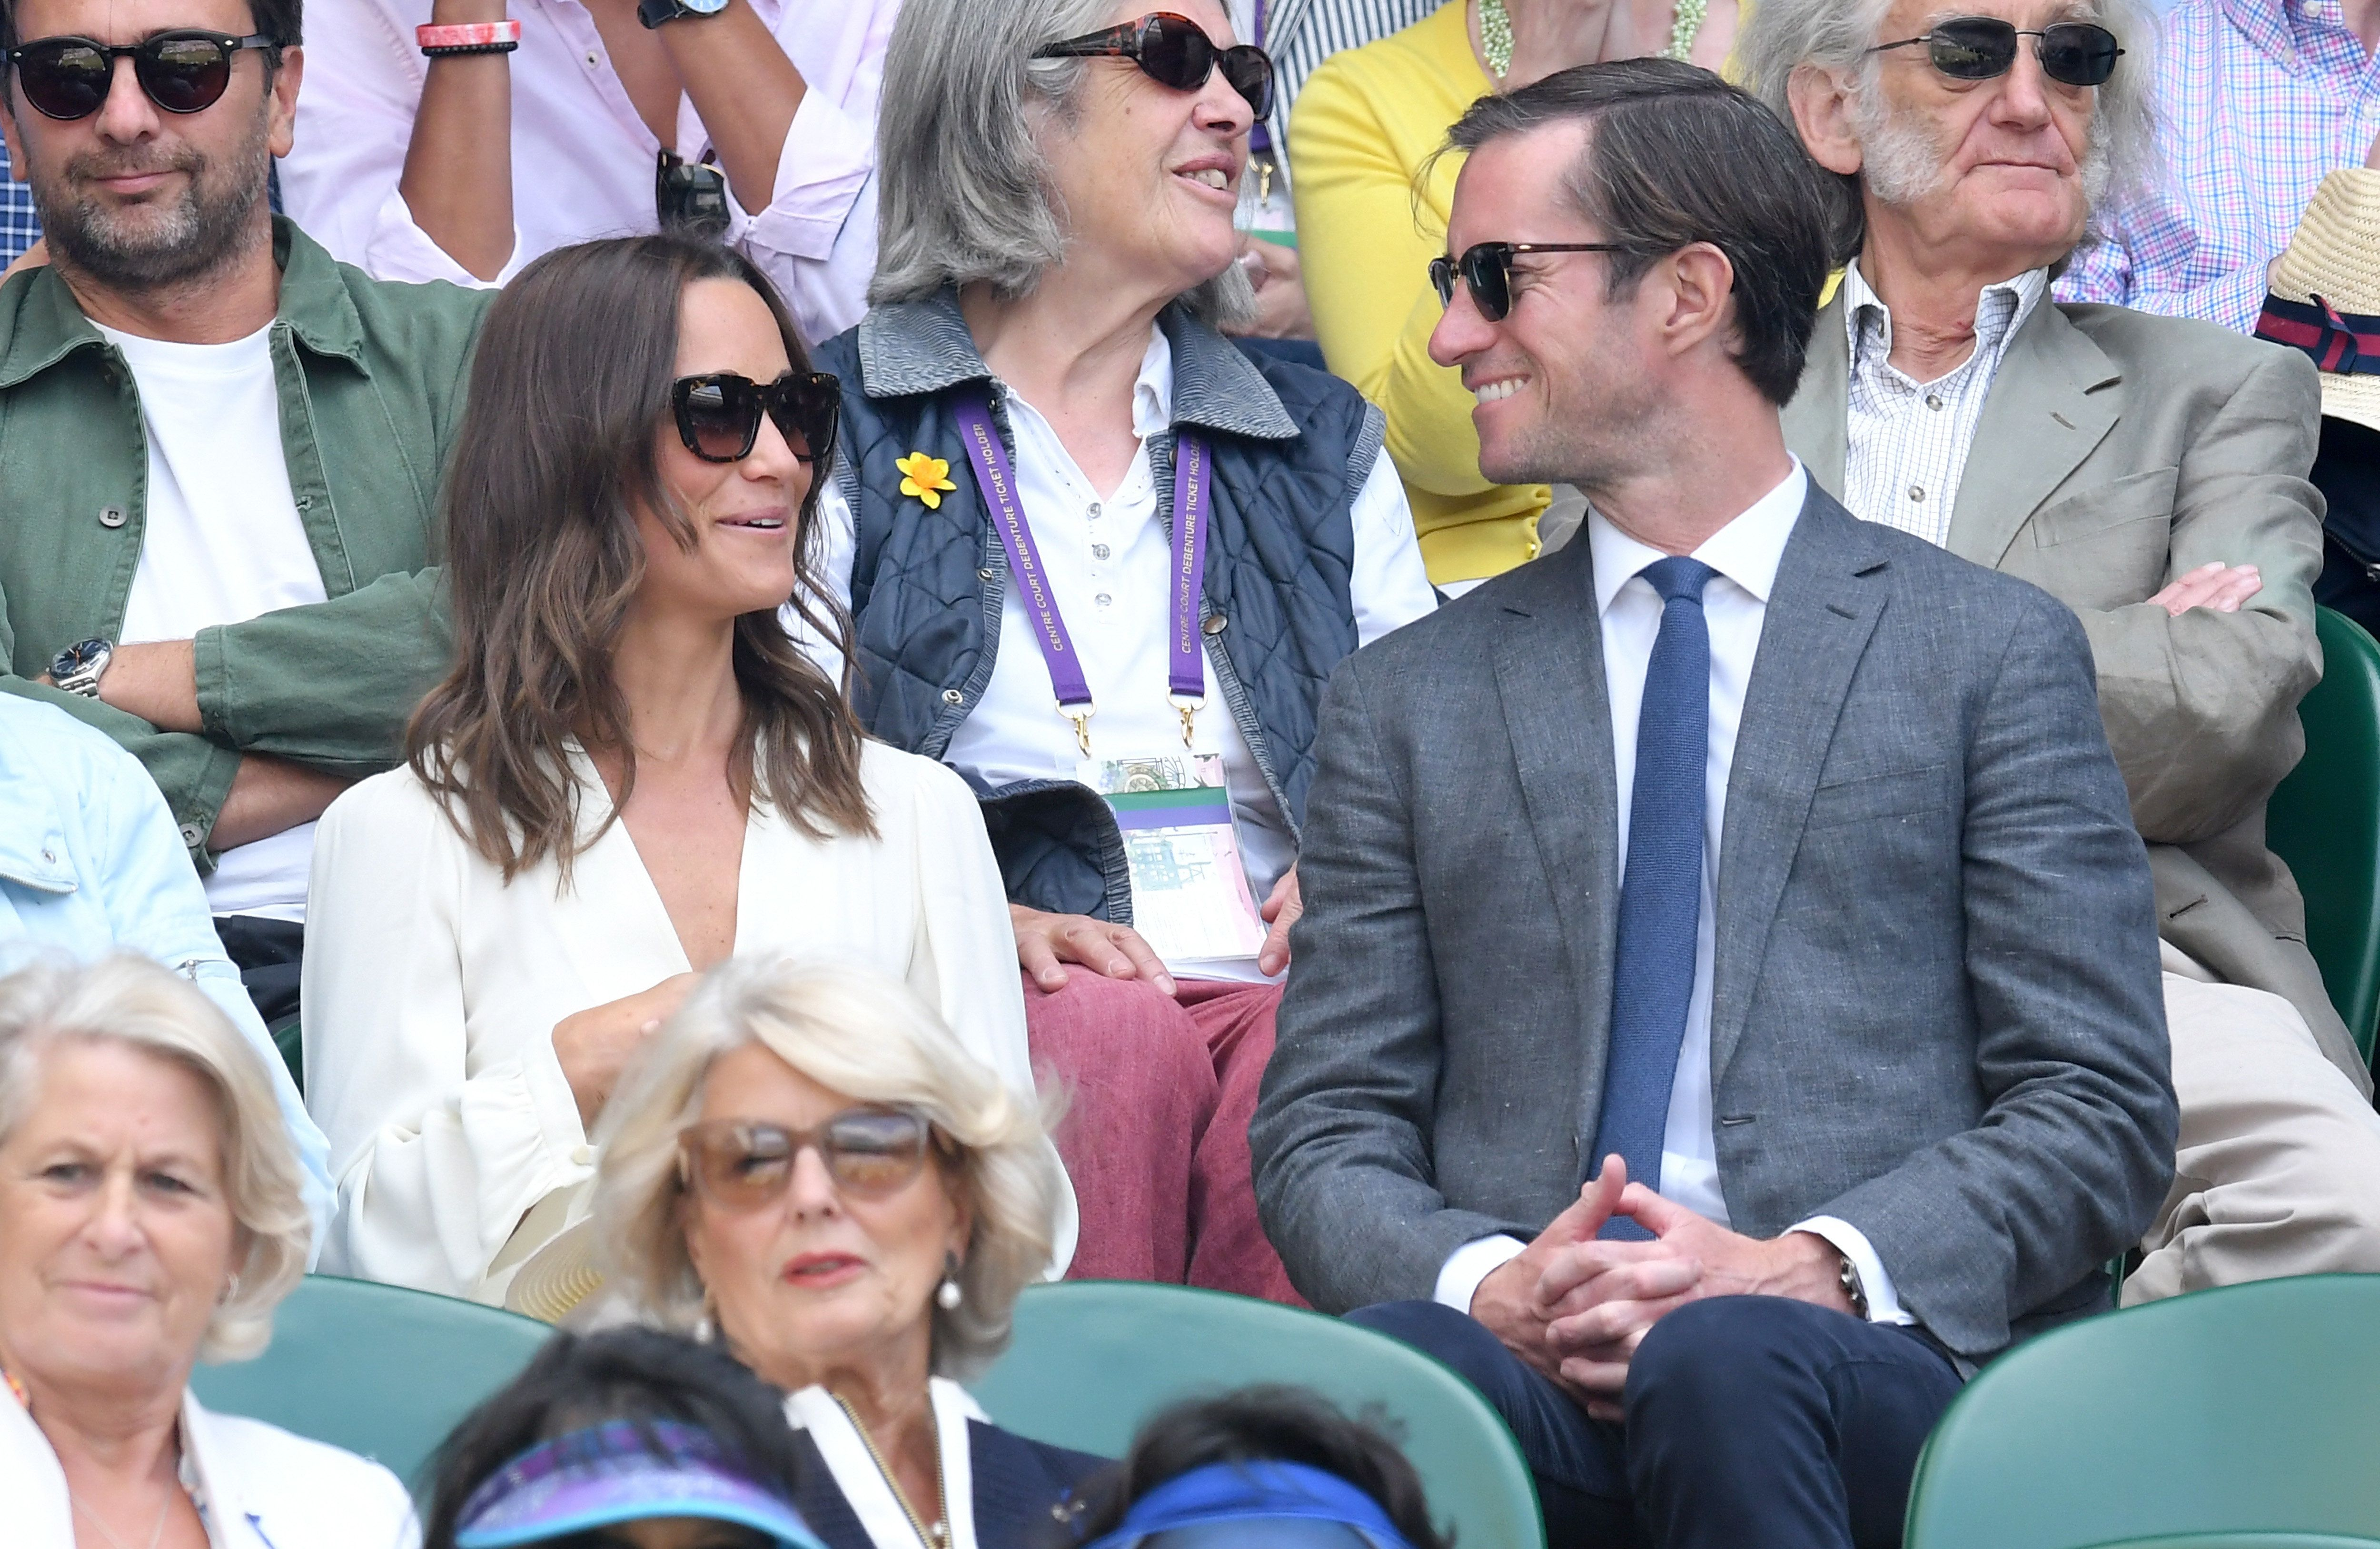 Pippa Middleton Pulls Off An All-White Wimbledon Look With